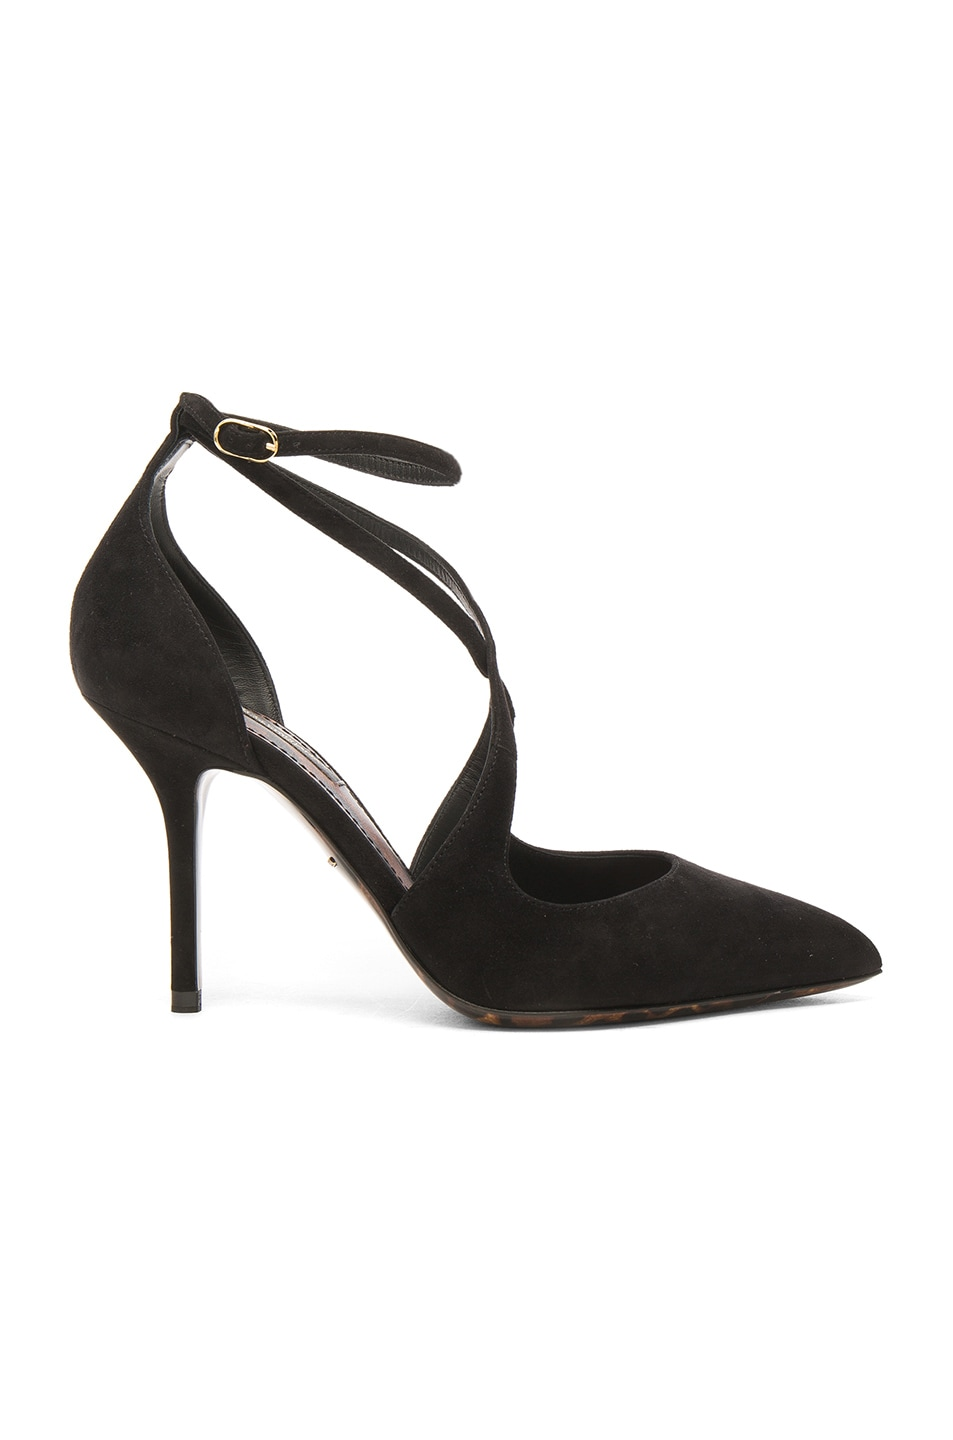 Image 1 of Dolce & Gabbana Strappy Suede Belucci Heels in Black